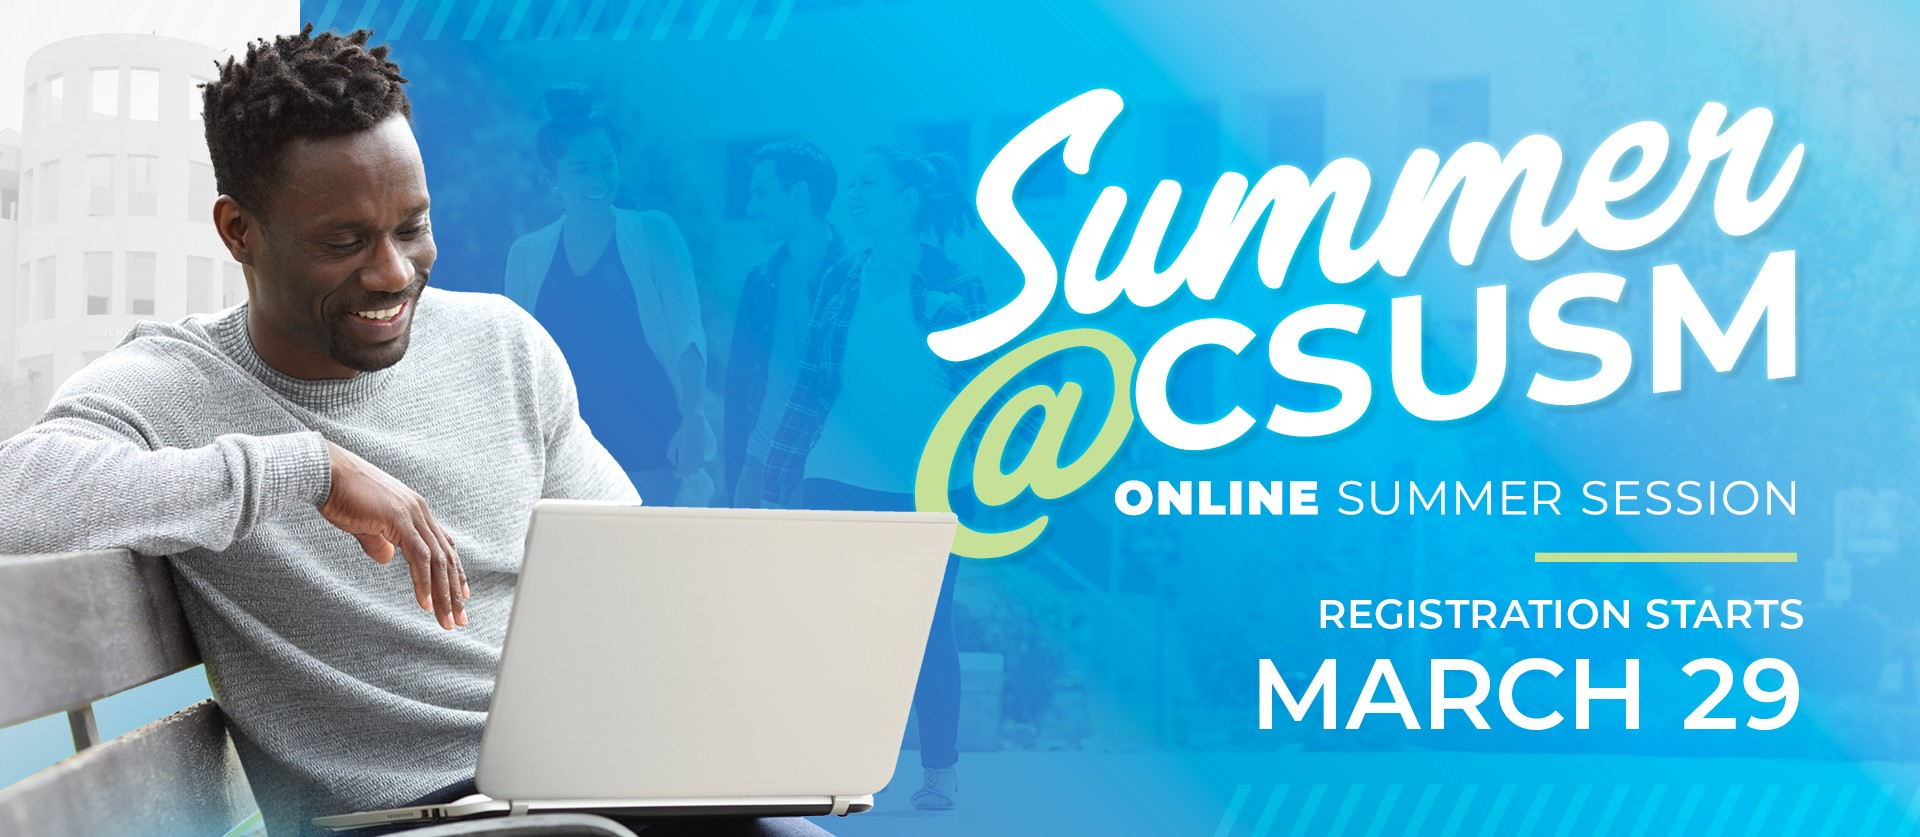 Summer session registration for CSUSM students opens on March 29 and for the public on April 5.